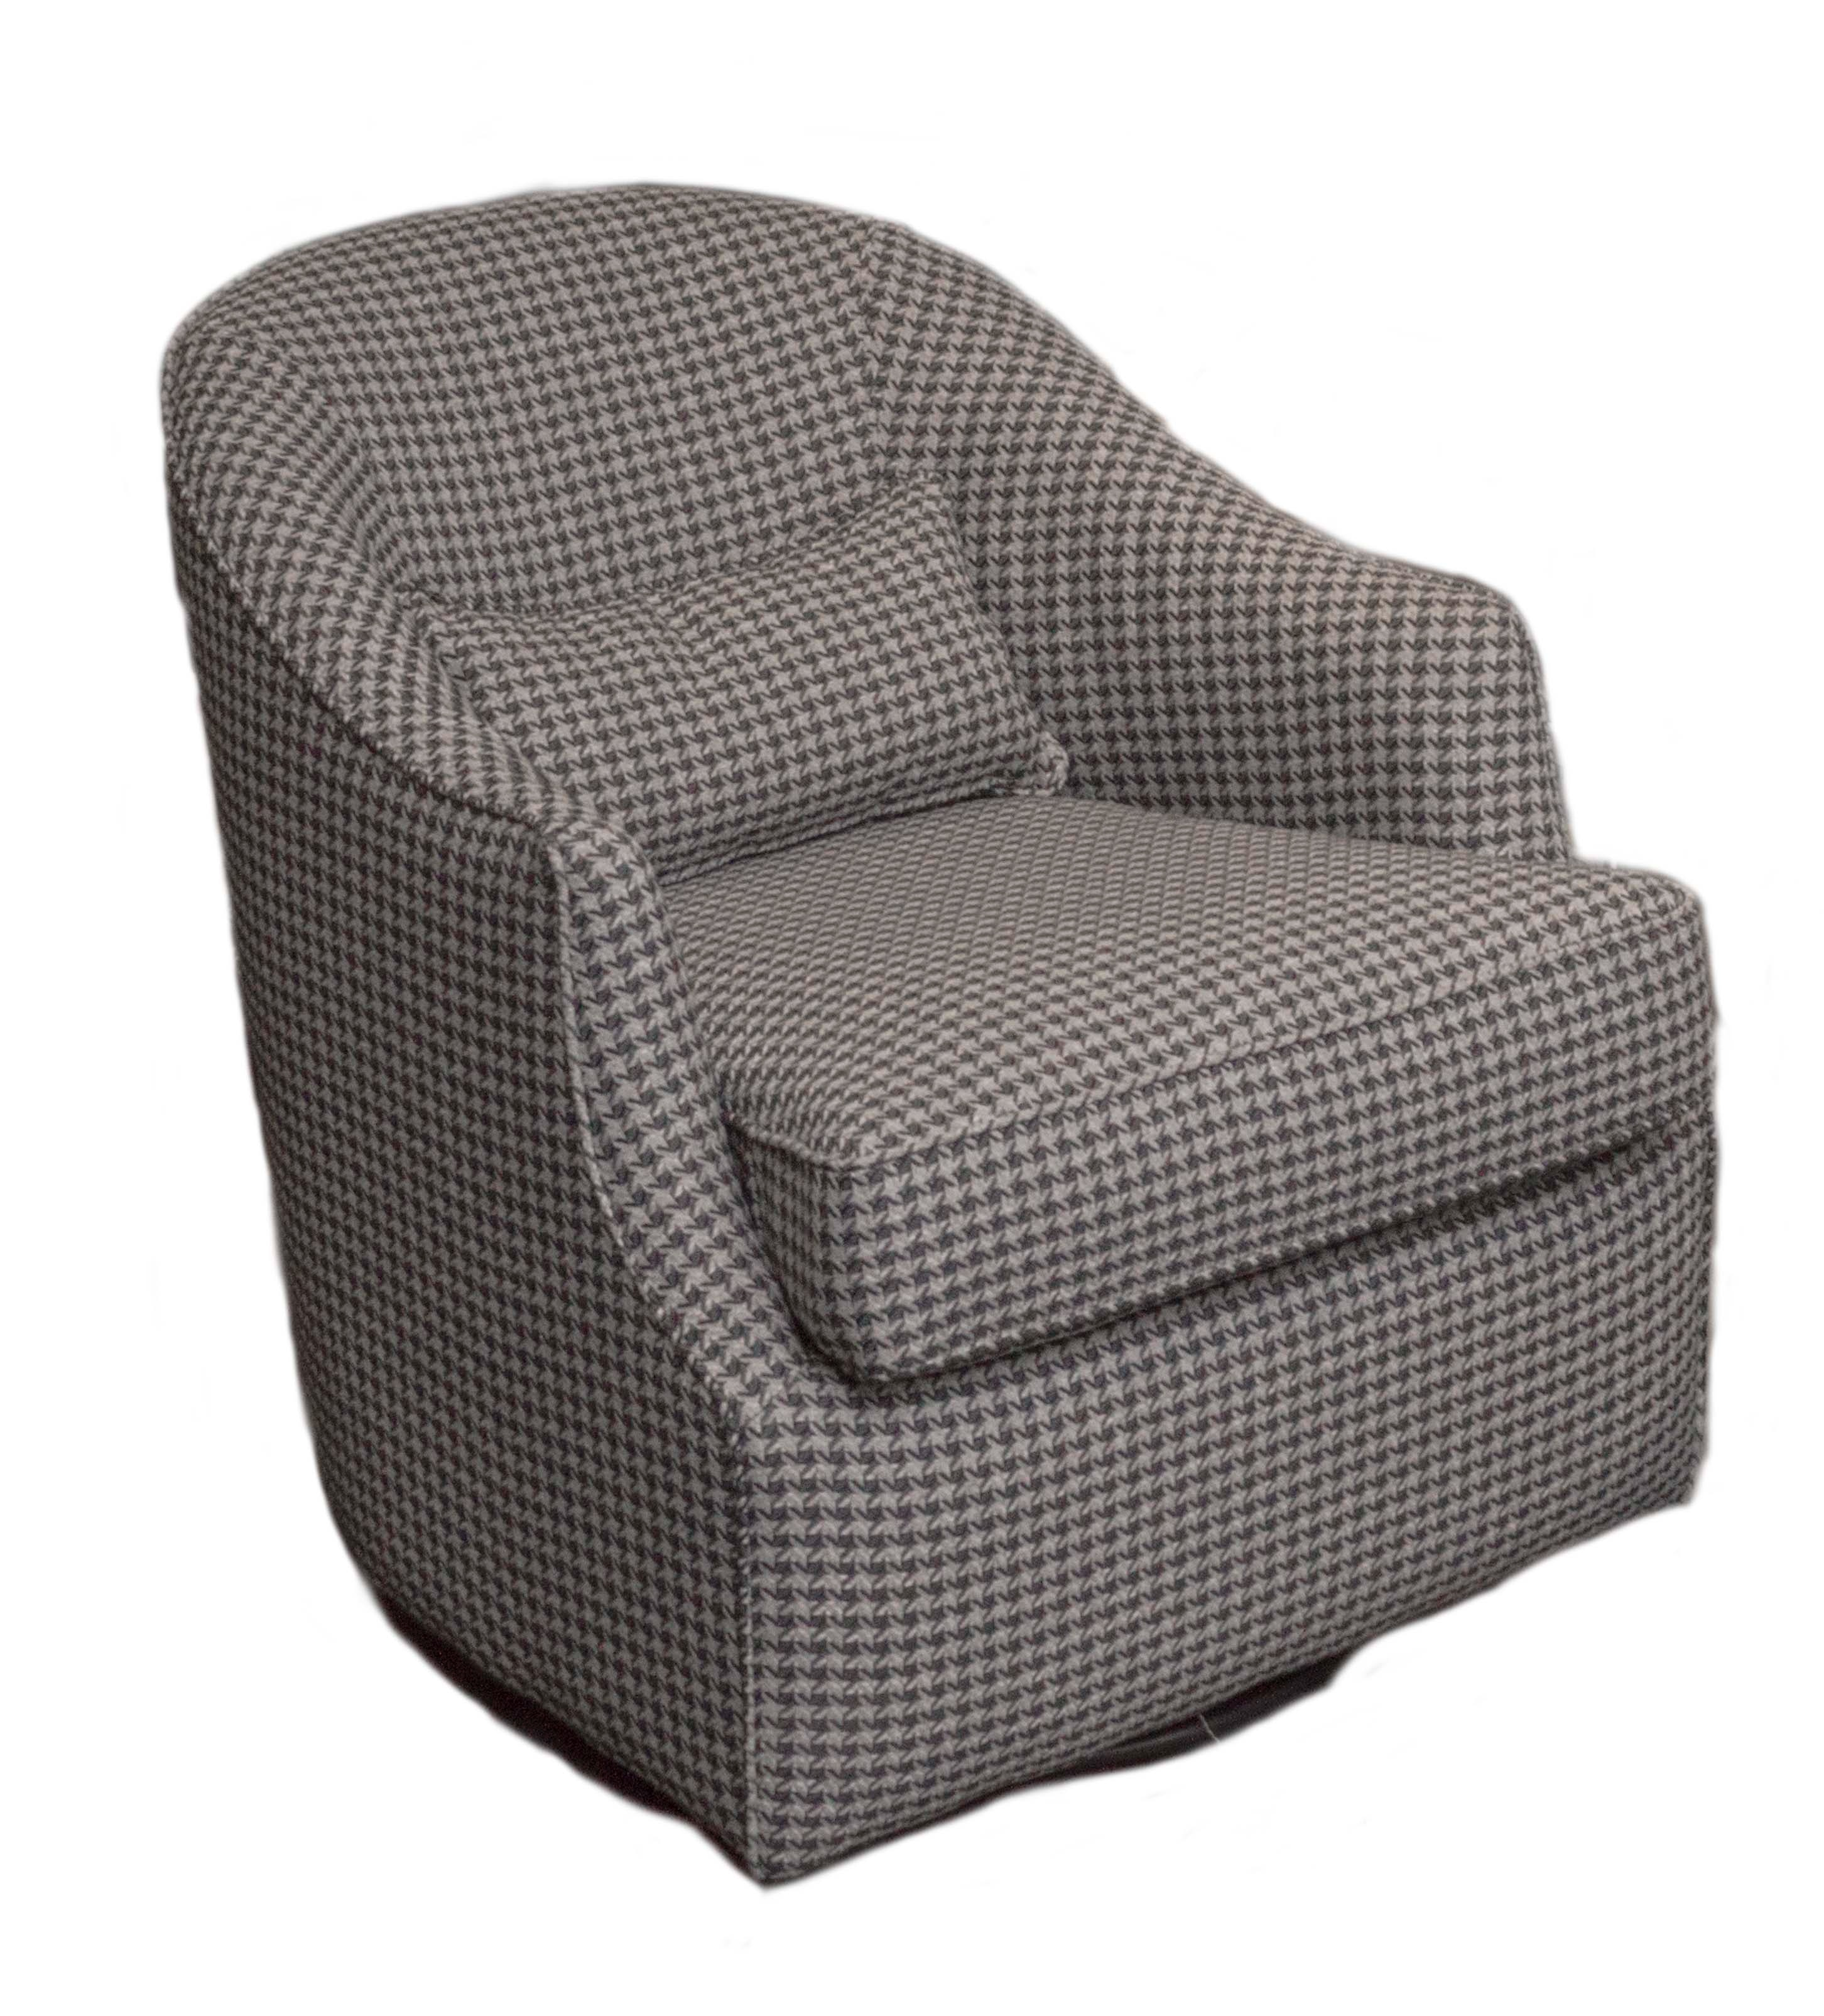 ab swivel chair 2 chairs and table set synergy home furnishings living room 1499 93 sims